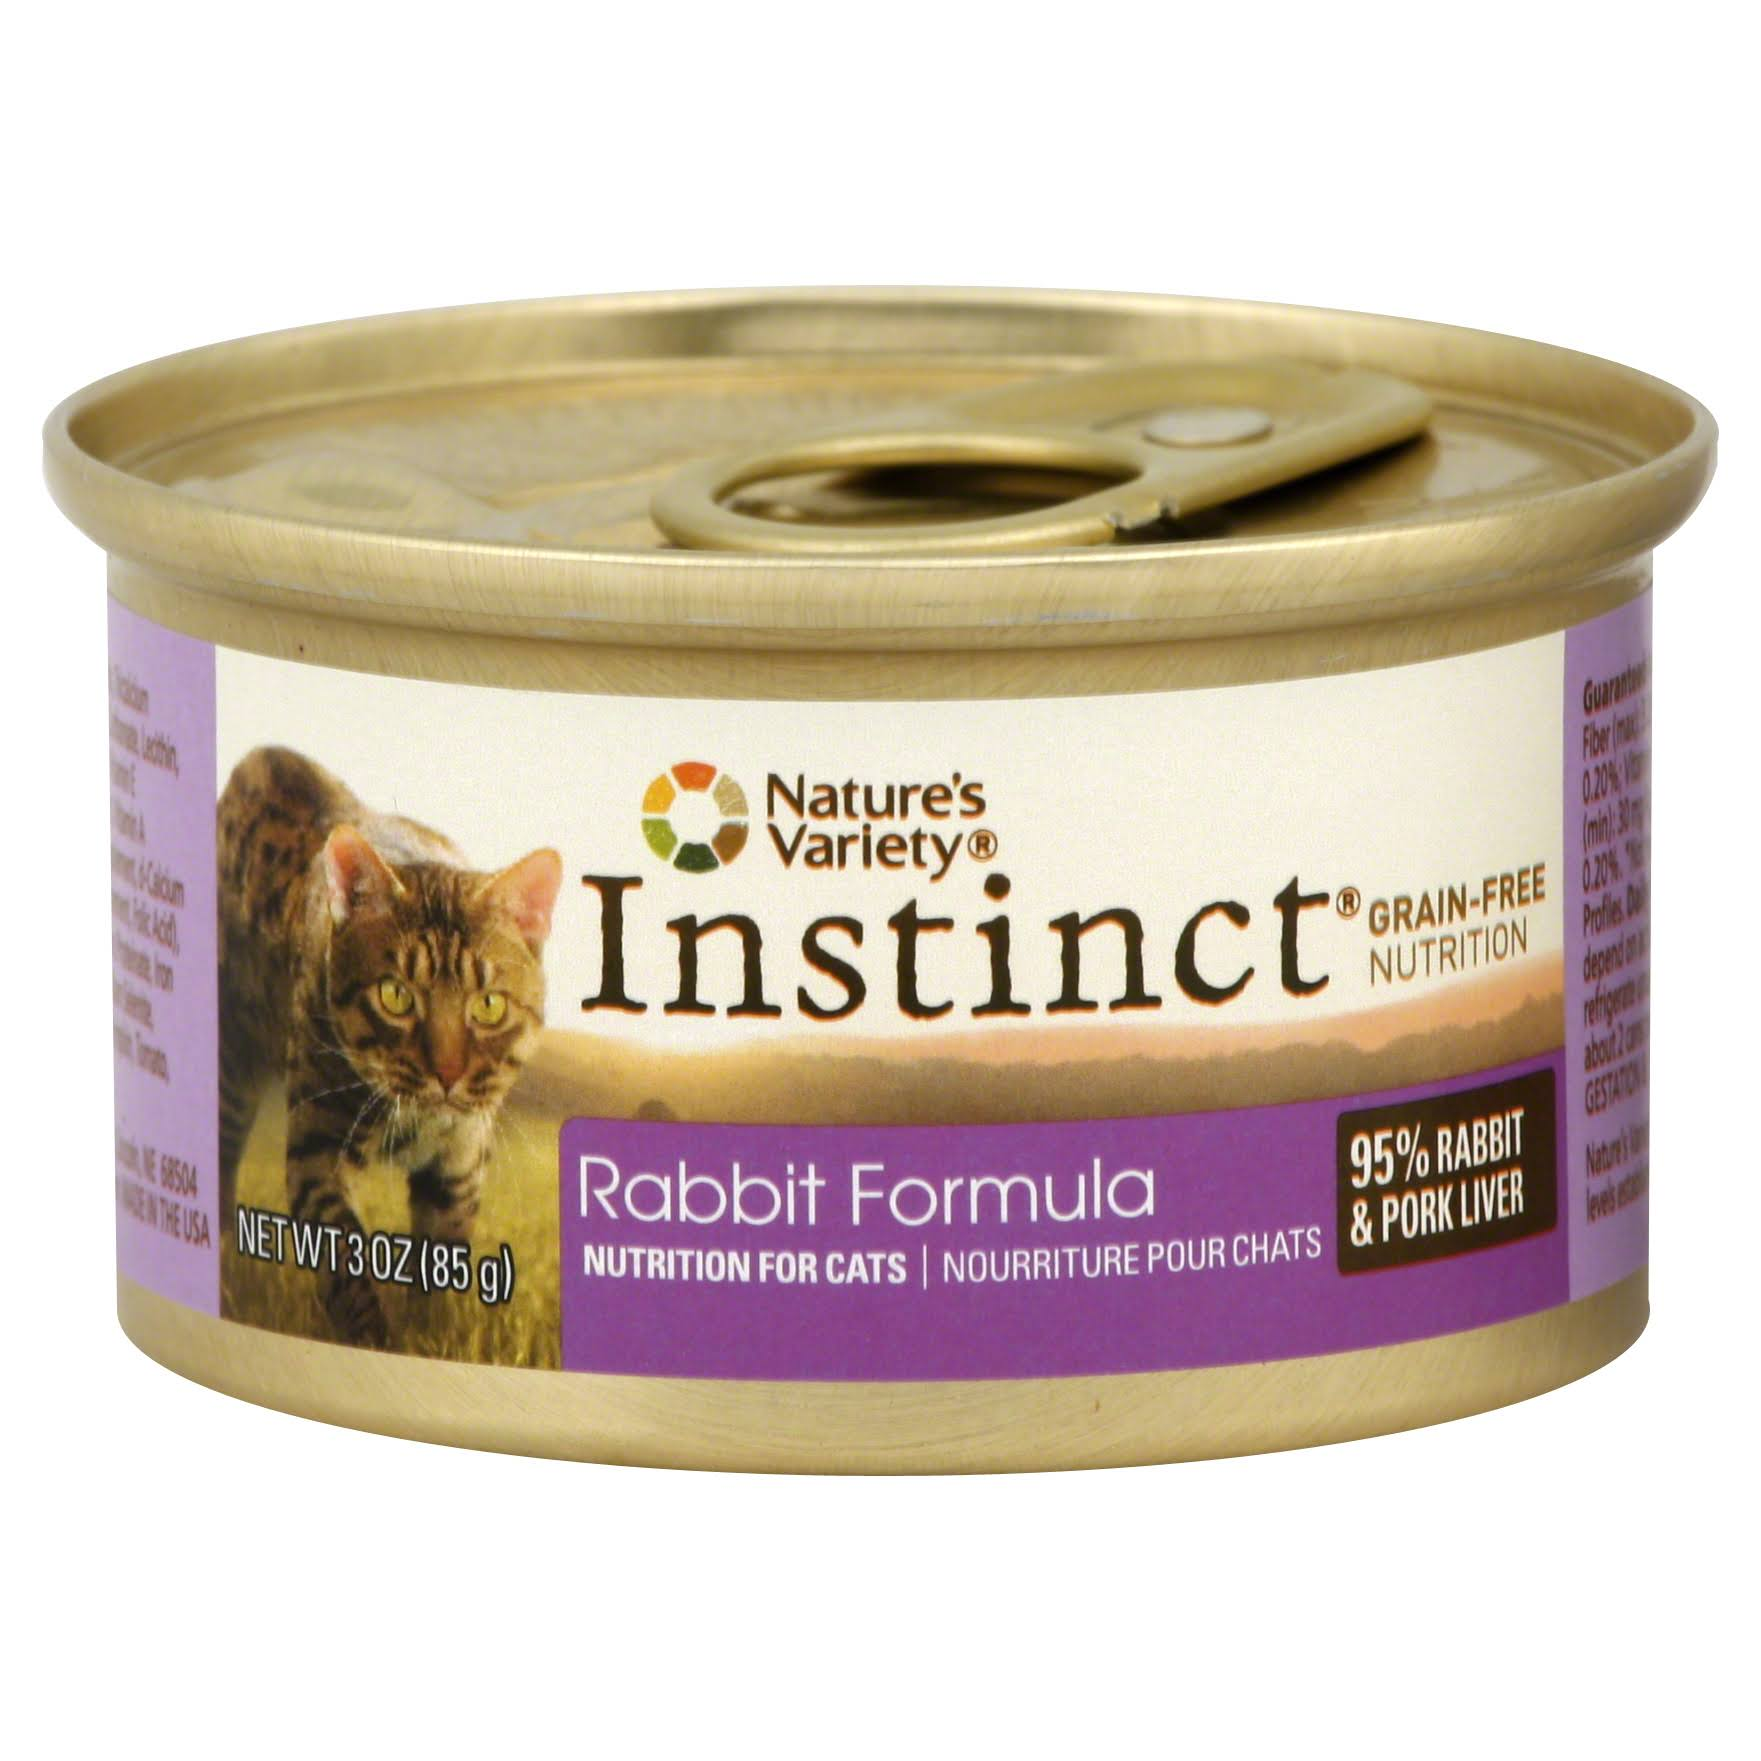 Nature's Variety Instinct Grain-Free Rabbit Canned Cat Food